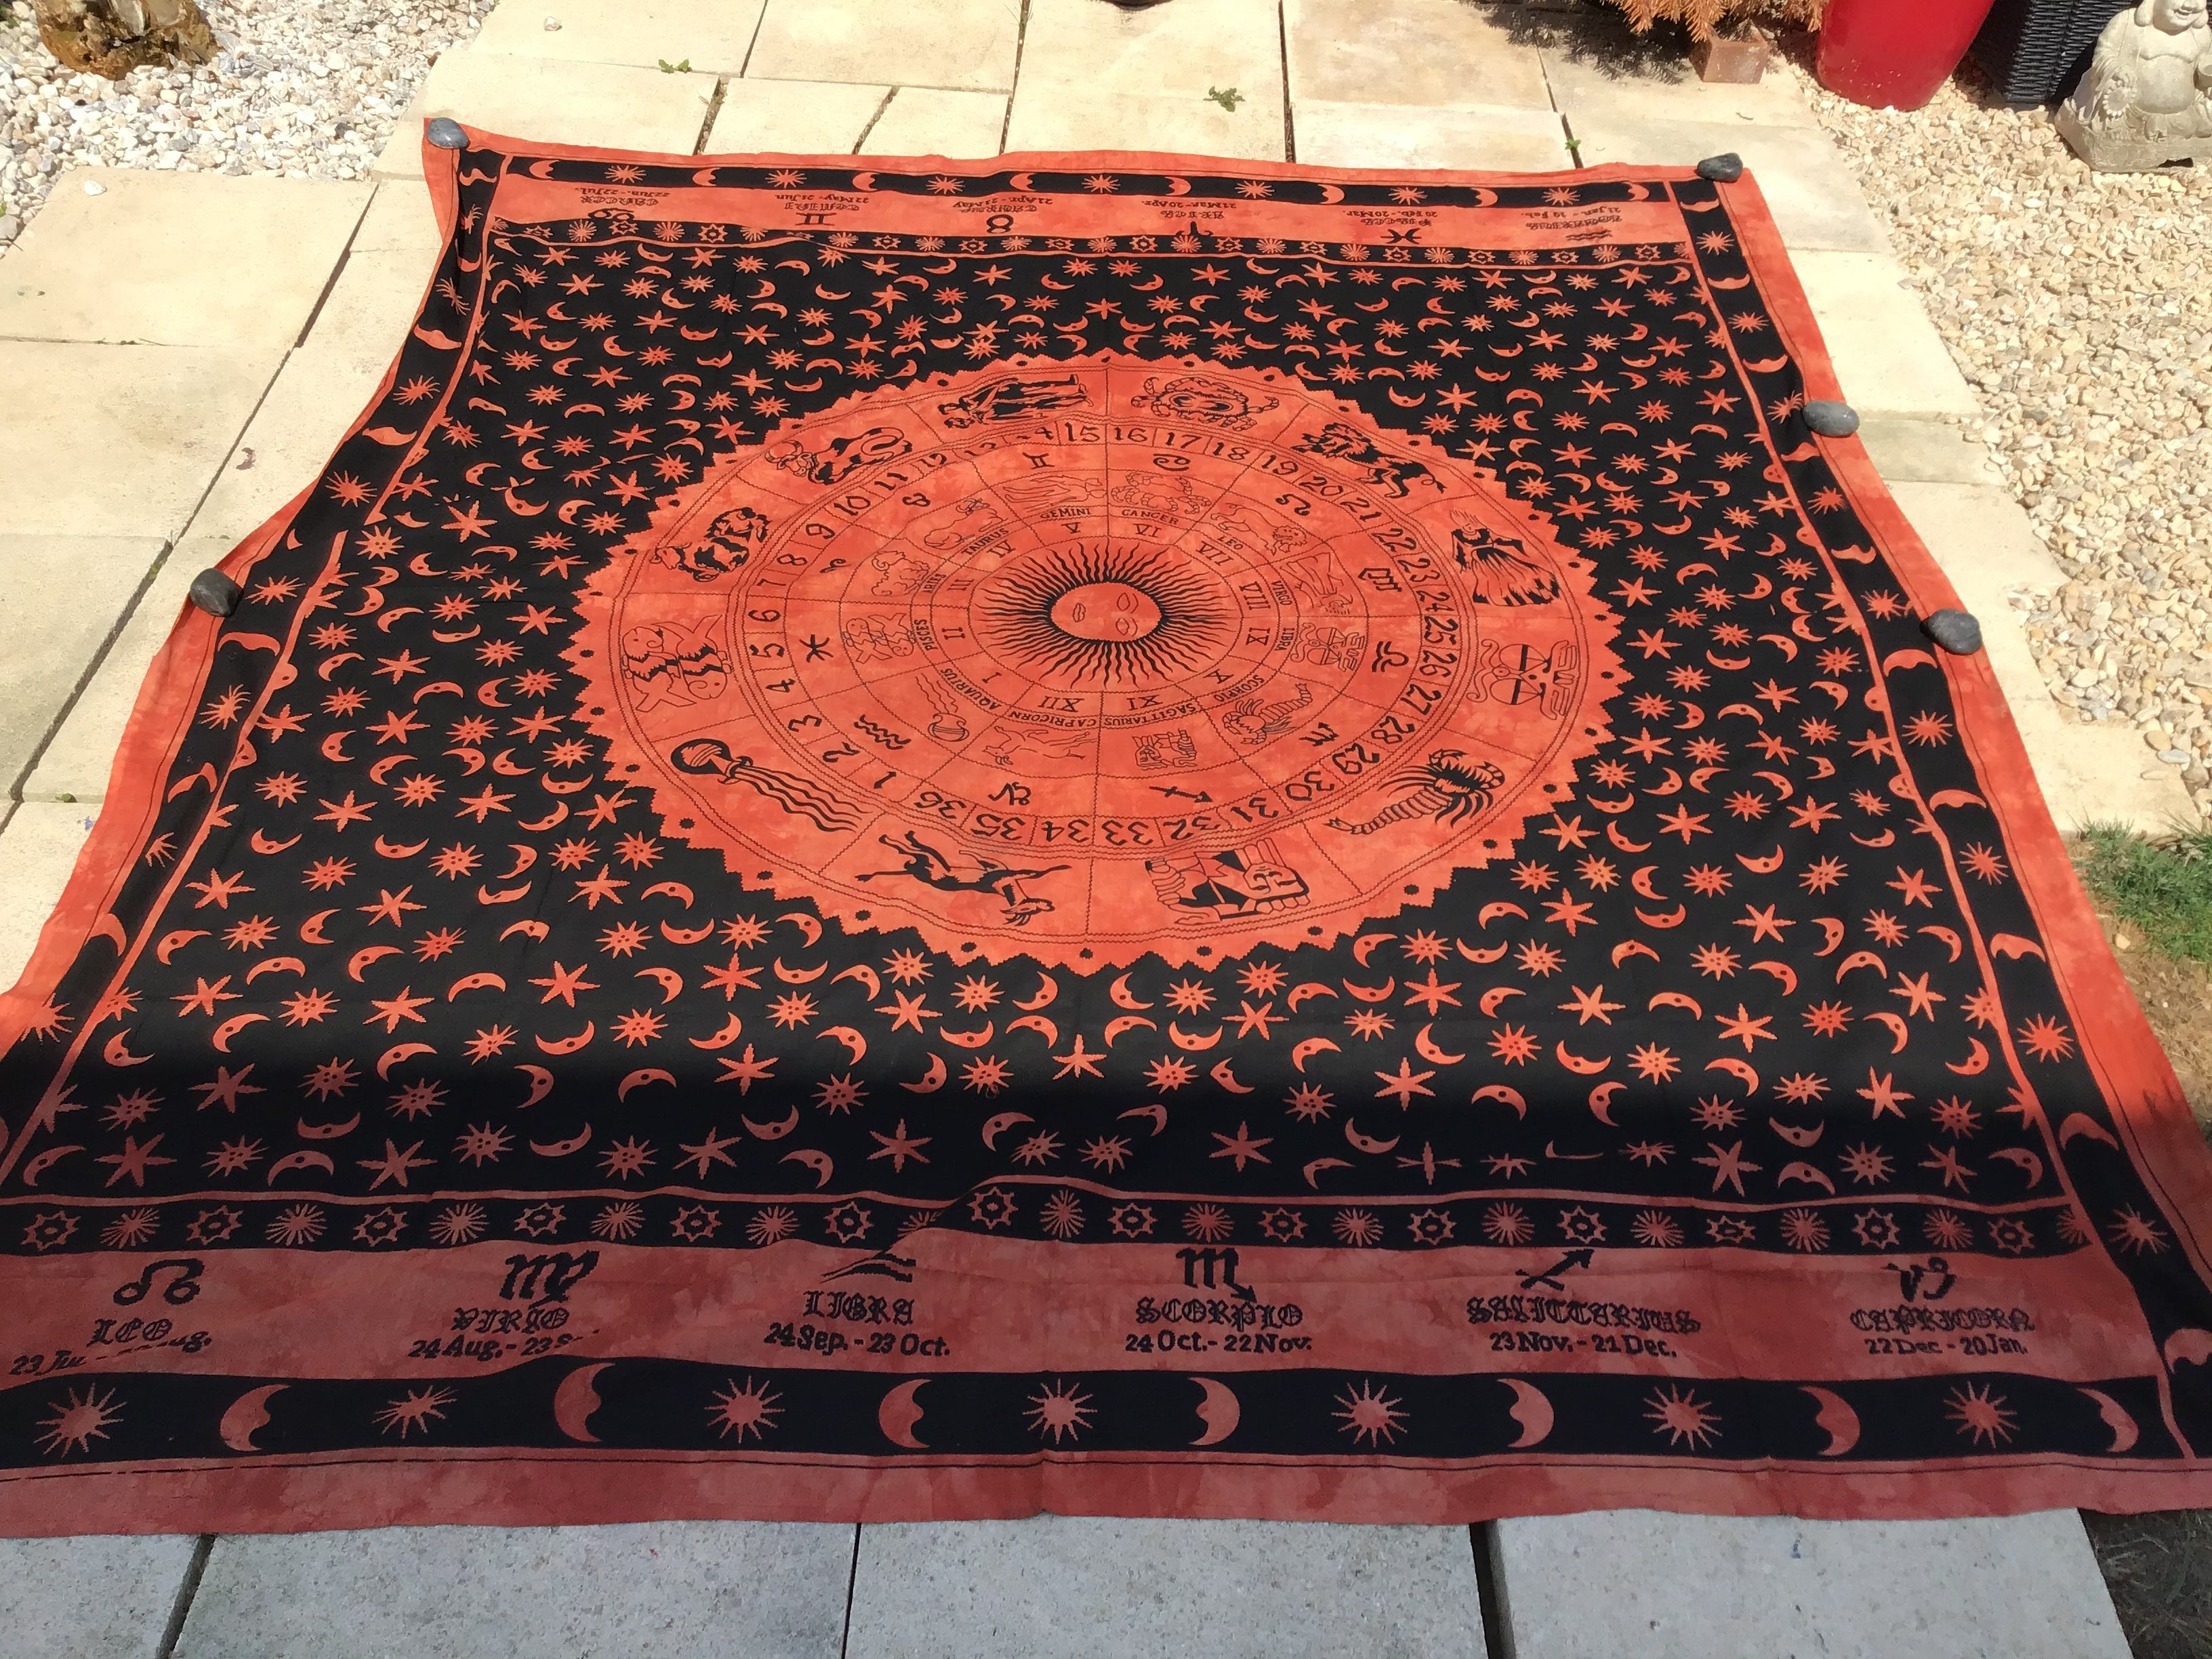 Zodiac, horoscope, Indian tapestry, throw, bedspread